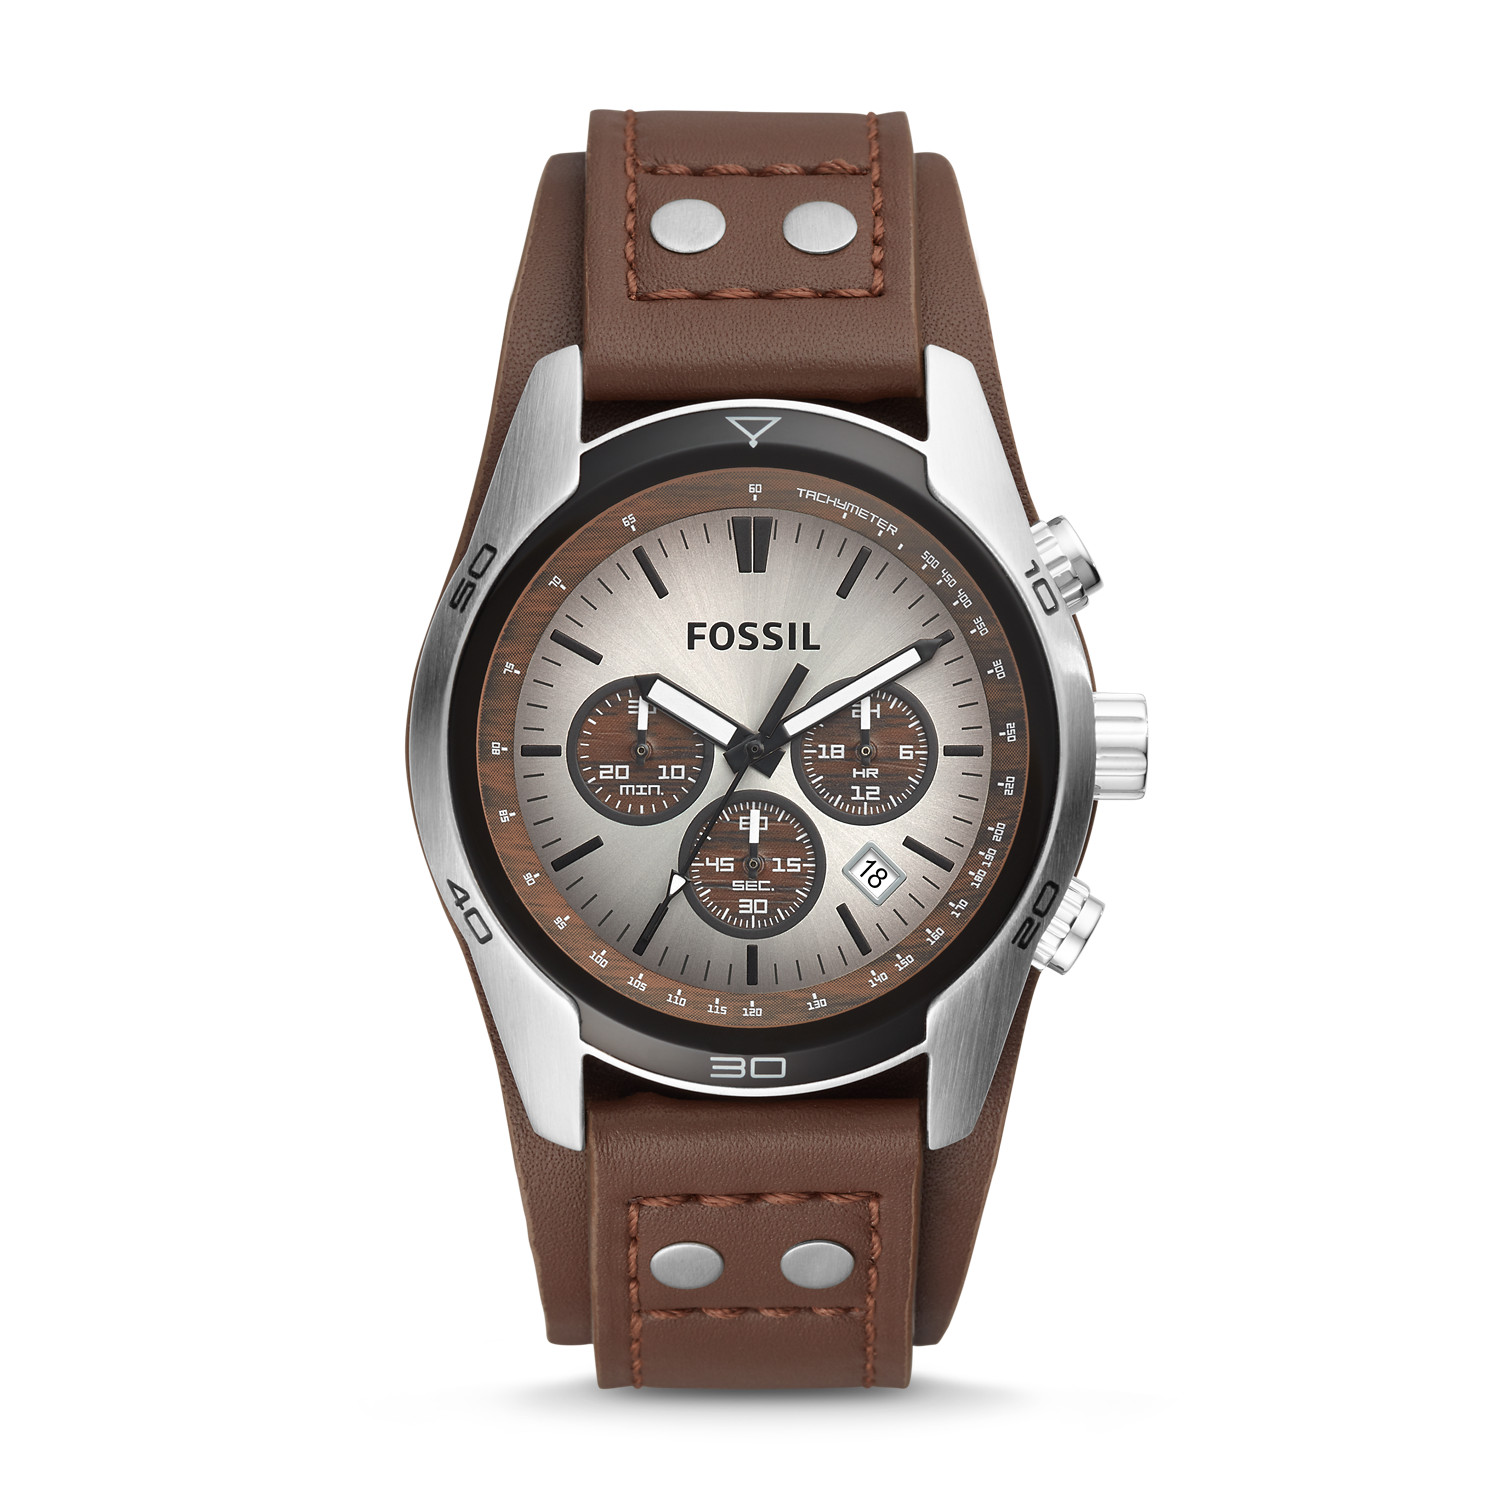 92a0f7d92 Coachman Chronograph Brown Leather Watch - Fossil